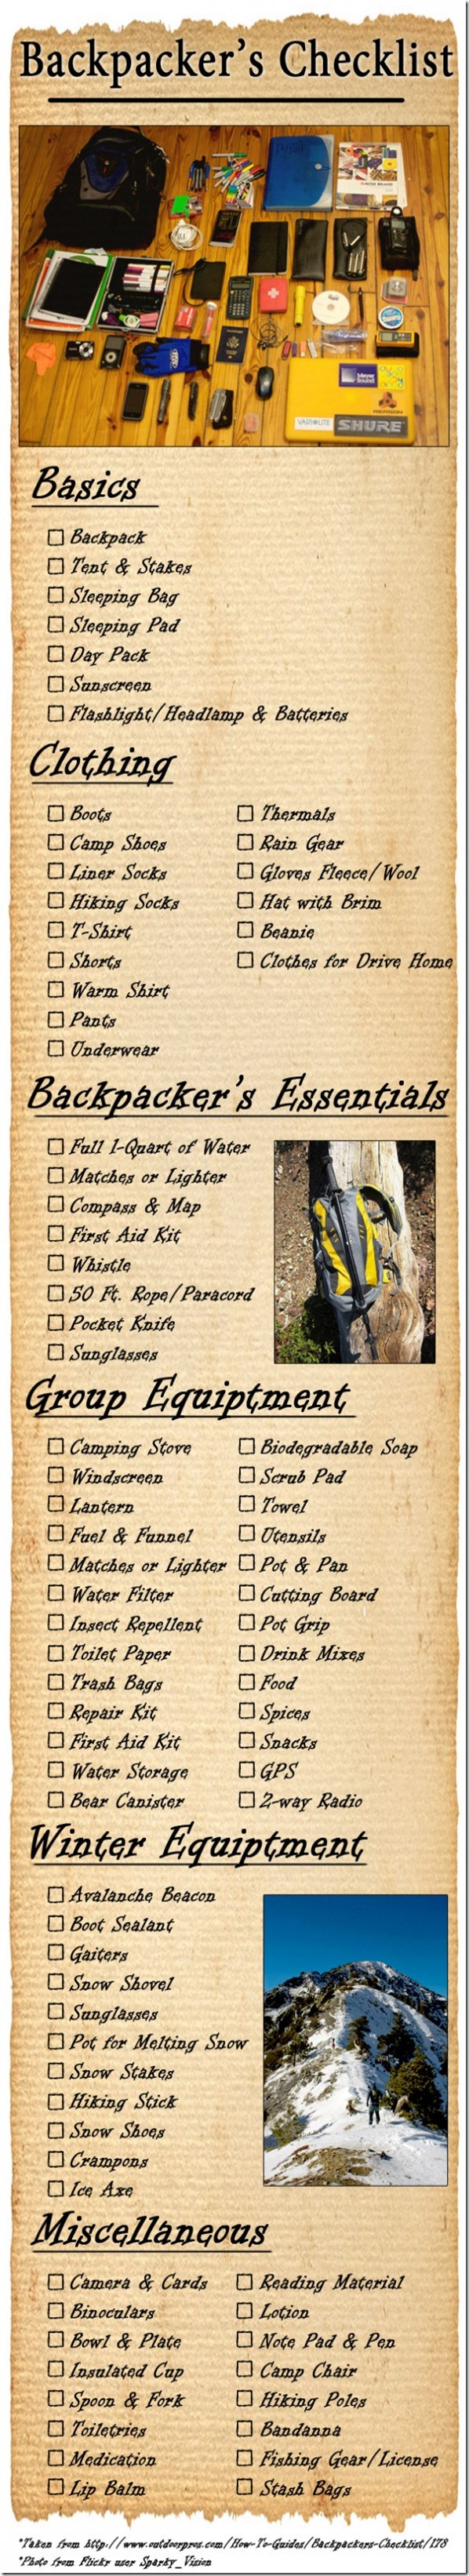 backpackers-checklist_5029194b08916_w594